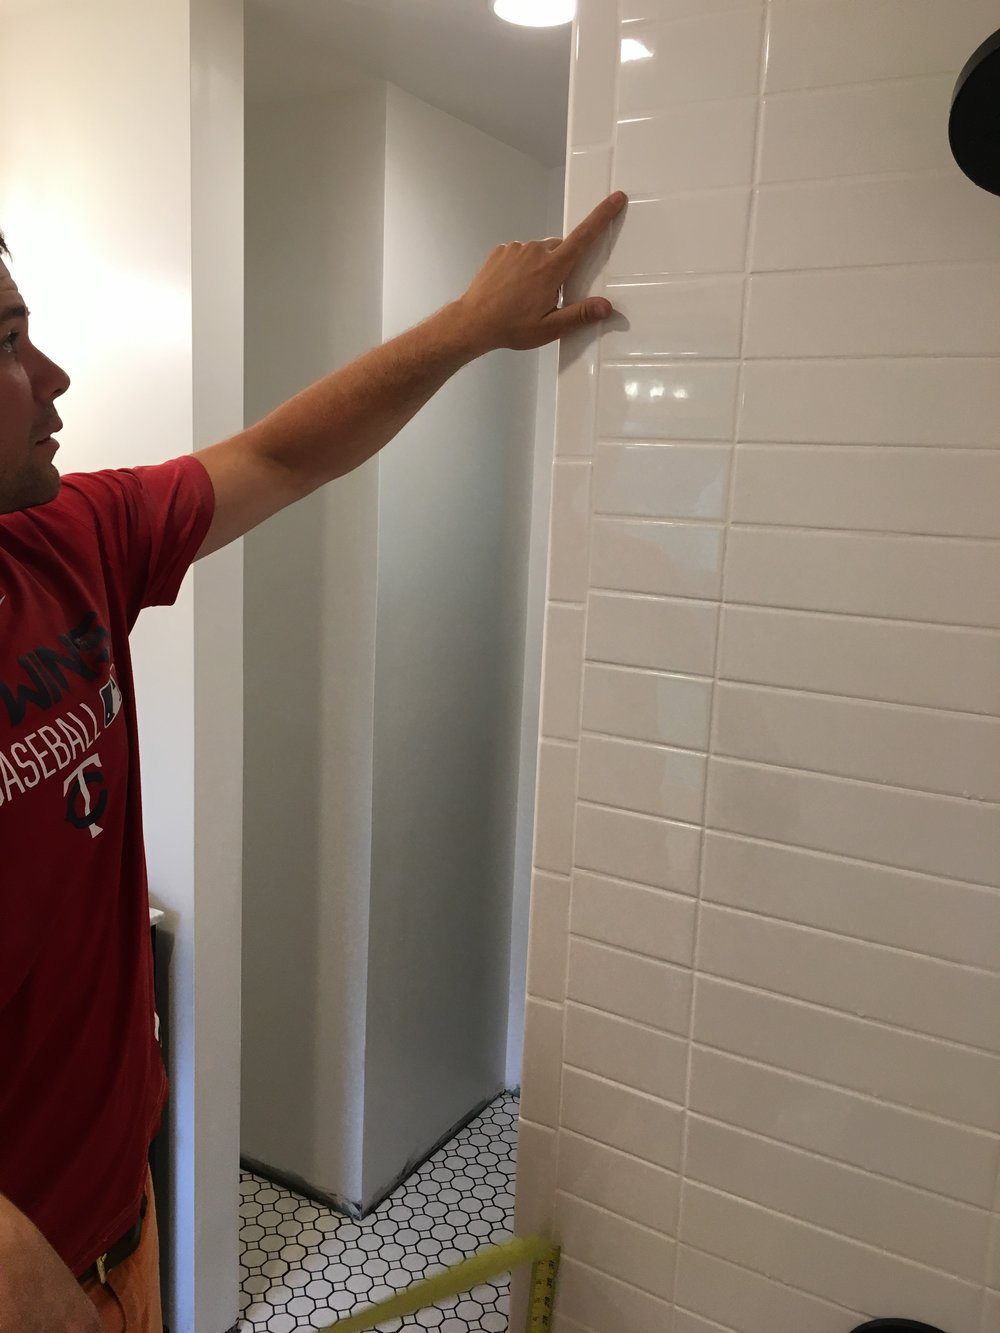 How to Install a Shower Rod on a Tile Wall — Our Fifties Fixer Upper